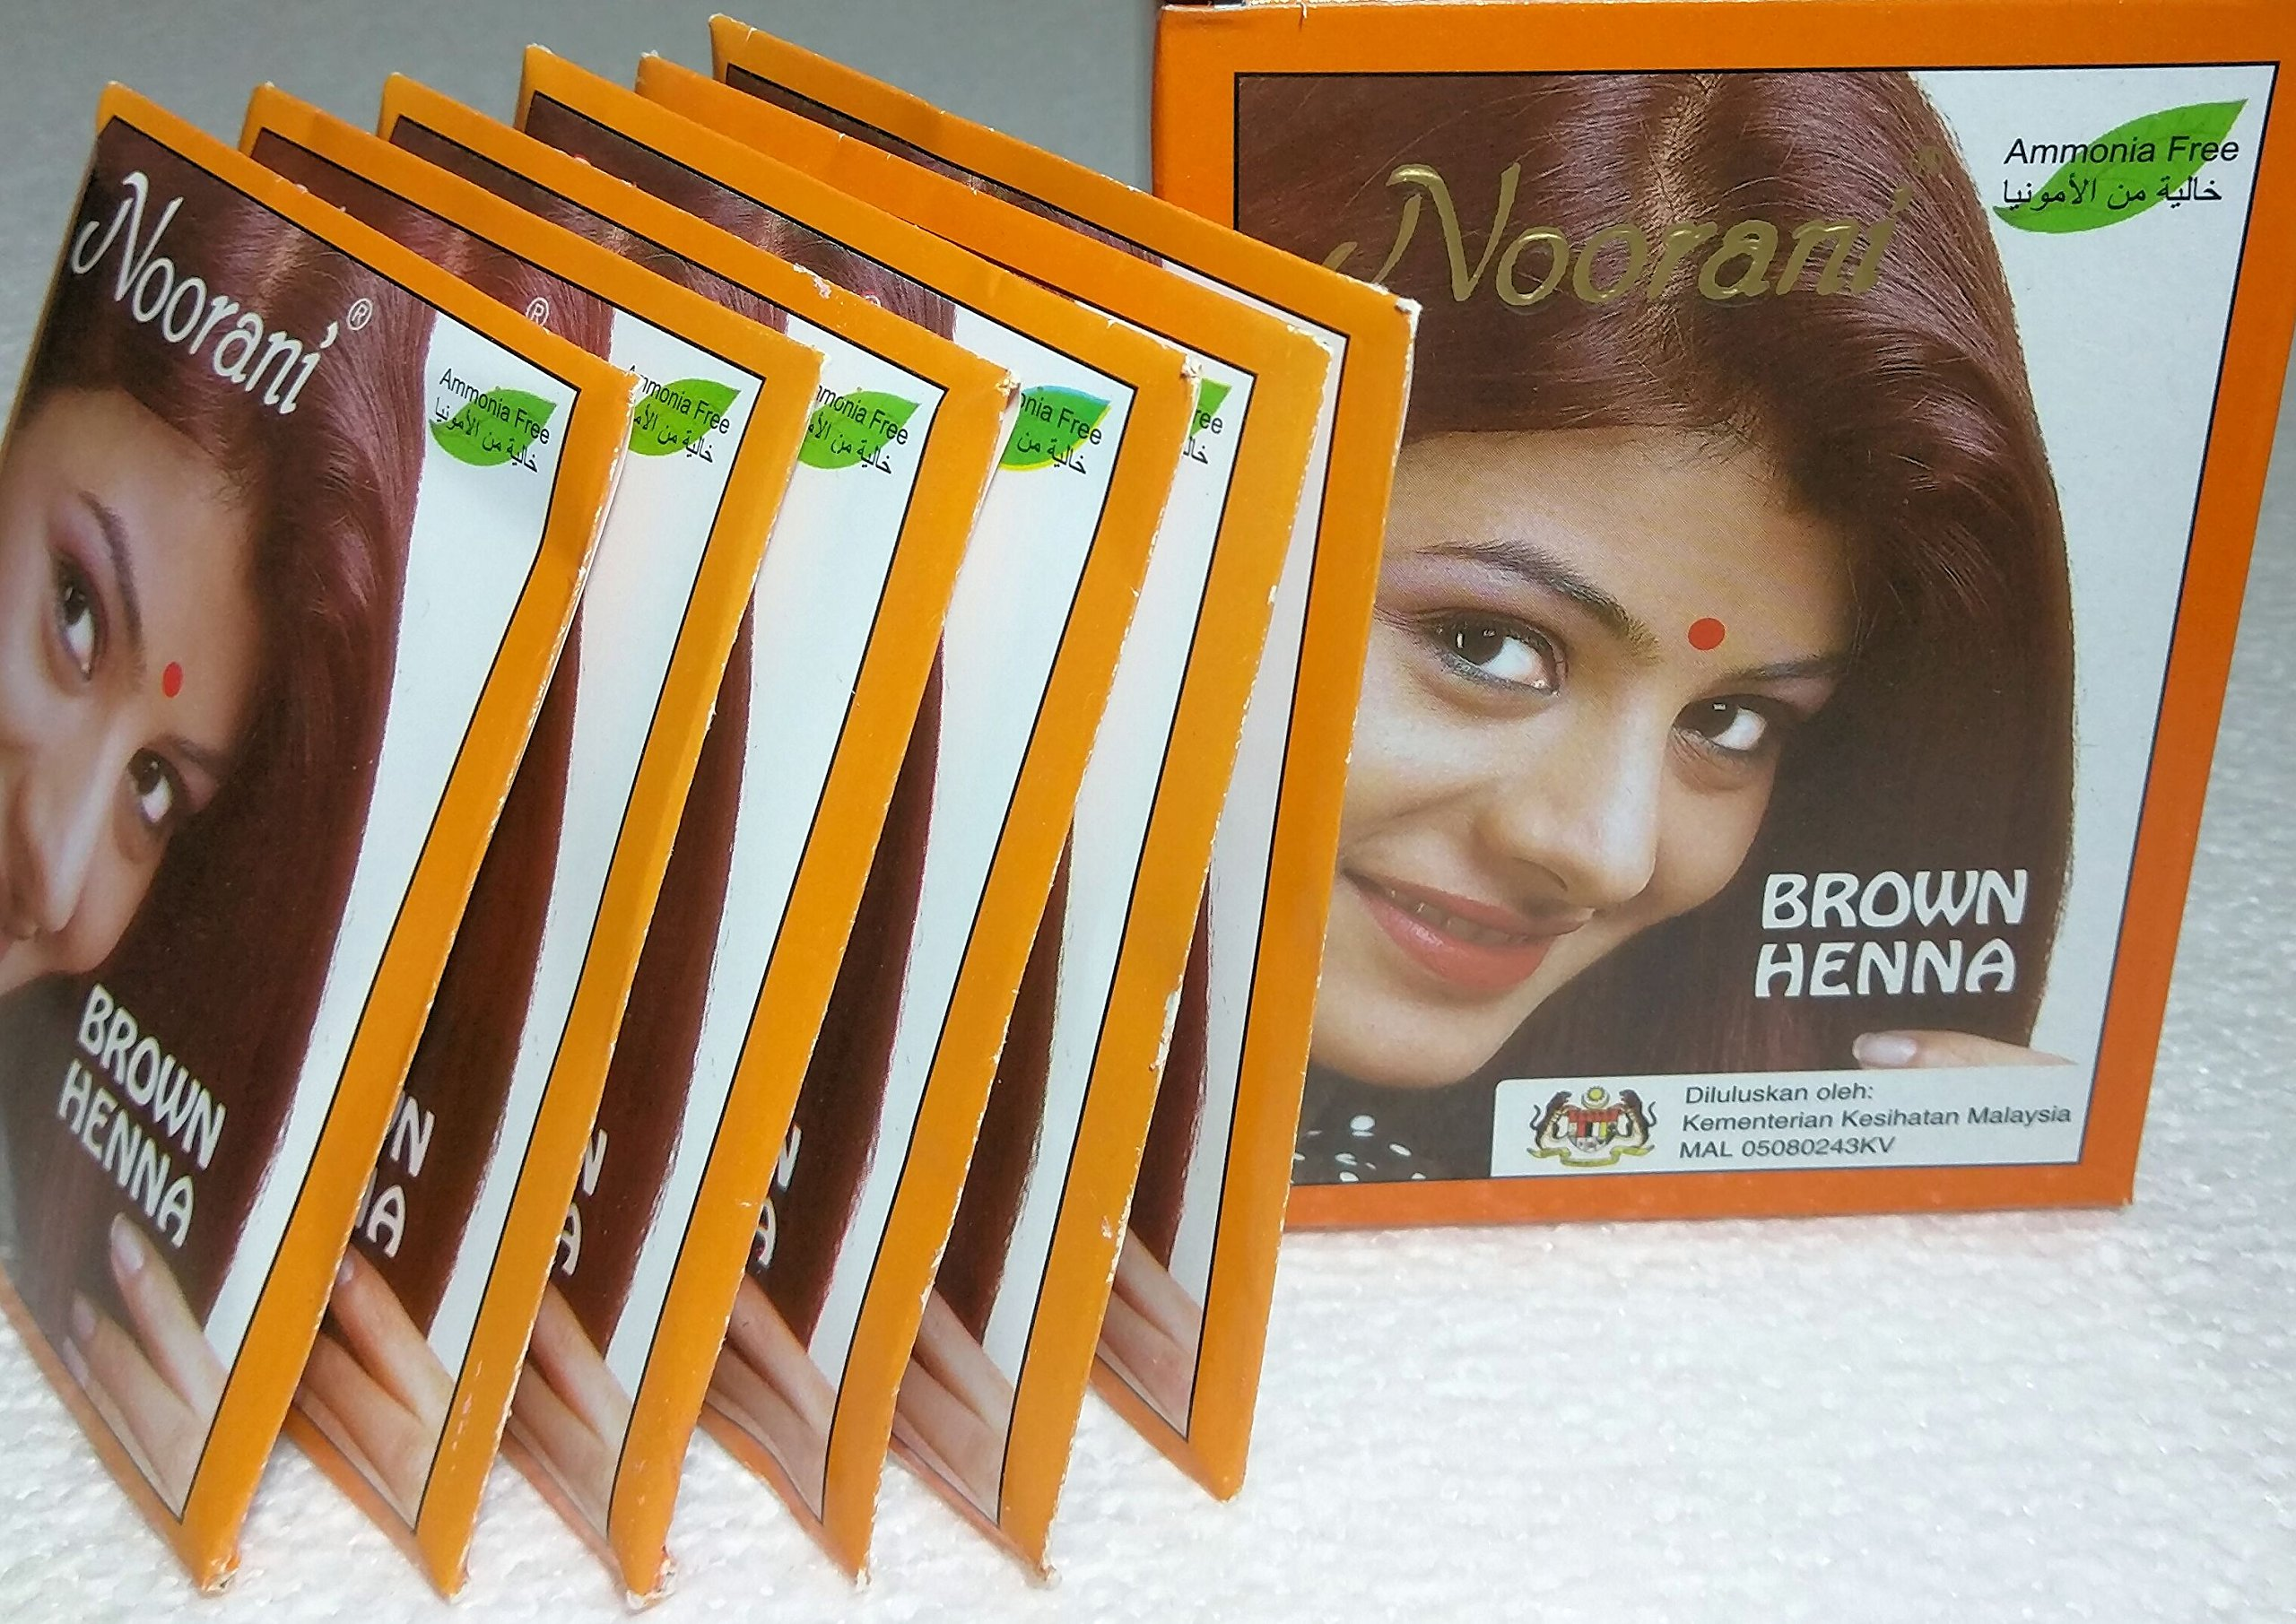 Noorani Brown Henna for Hair 6 X 10 Gms (Box of 100)